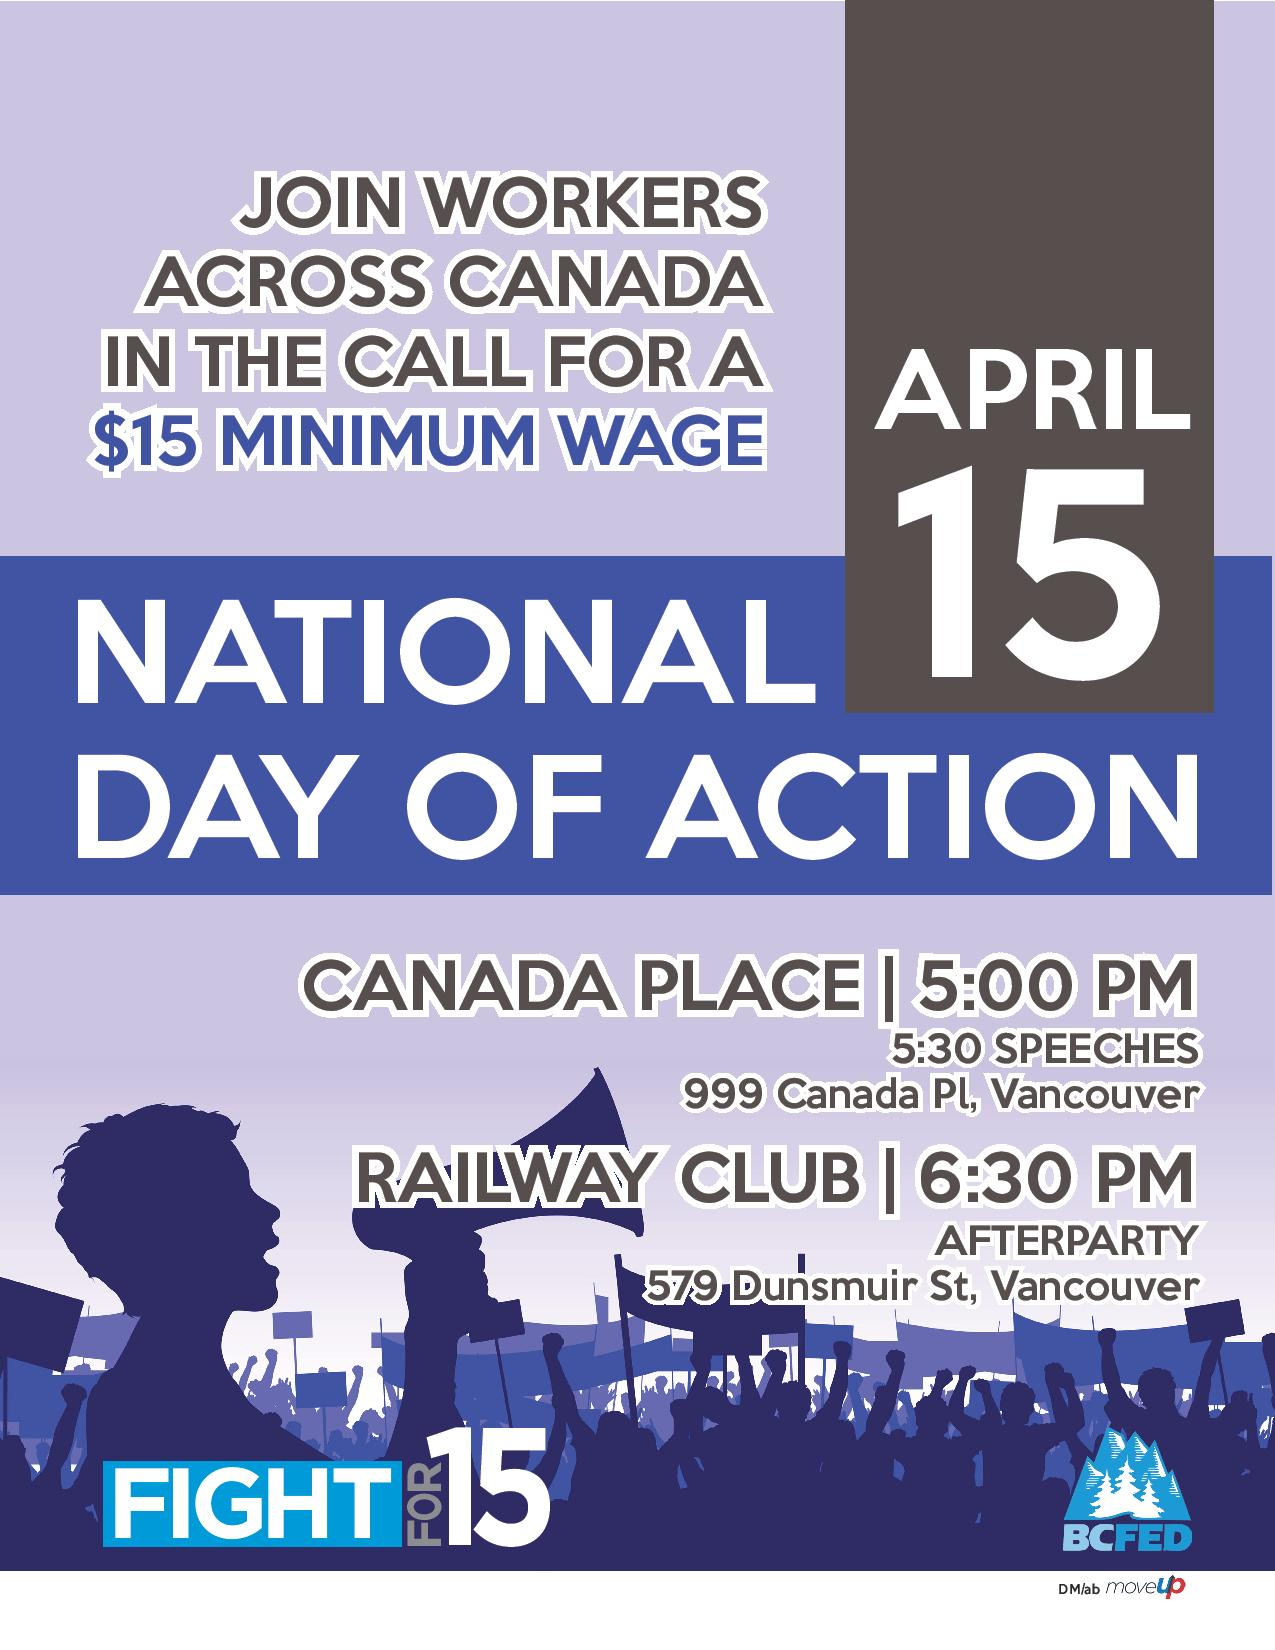 Fight for $15 National Day of Action Poster - Vancouver